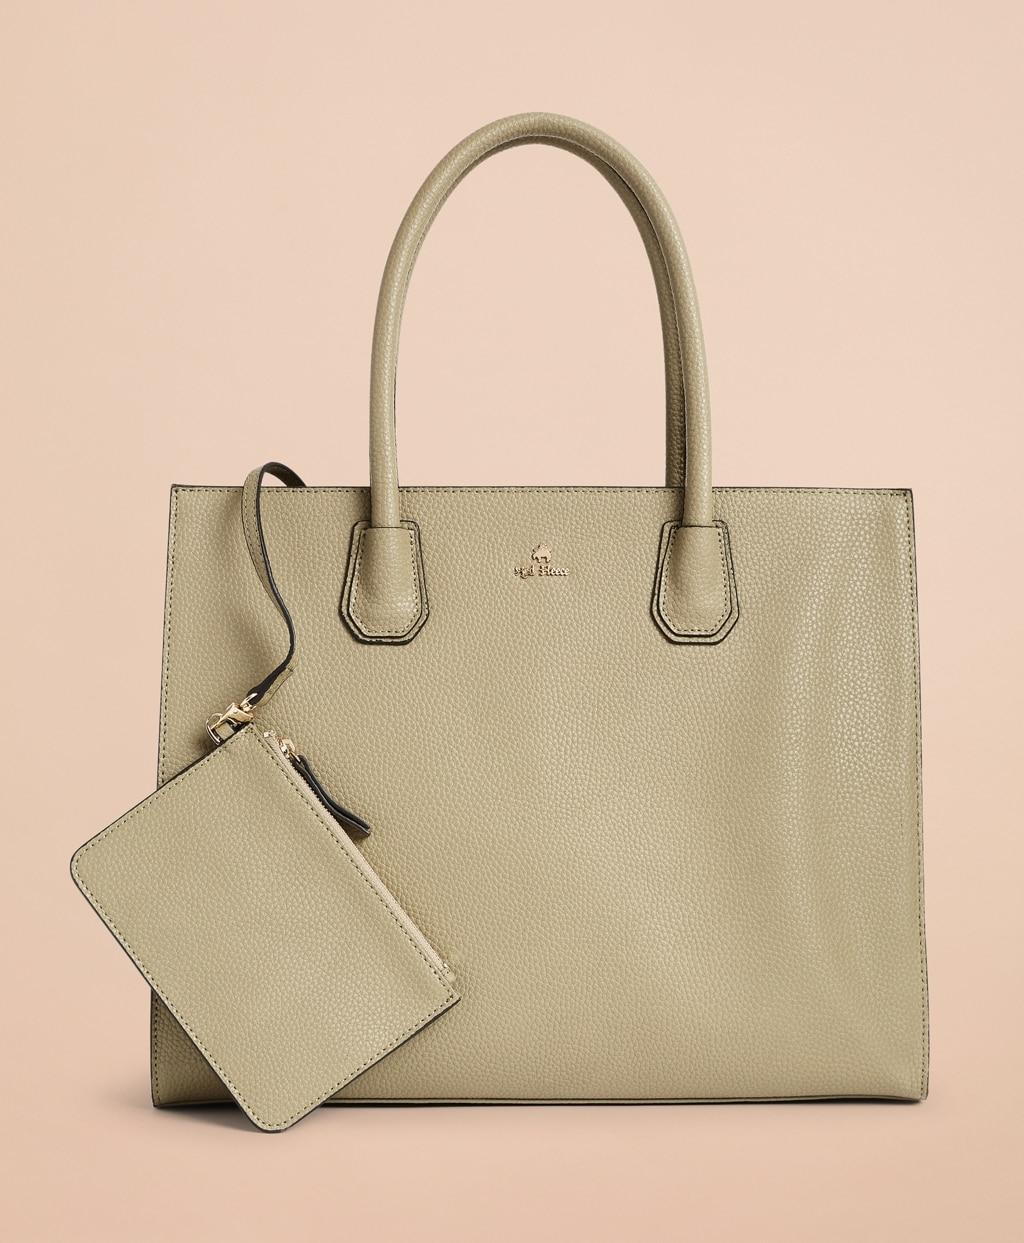 df503421f Brooks Brothers Pebbled Leather Tote Bag in Green - Lyst